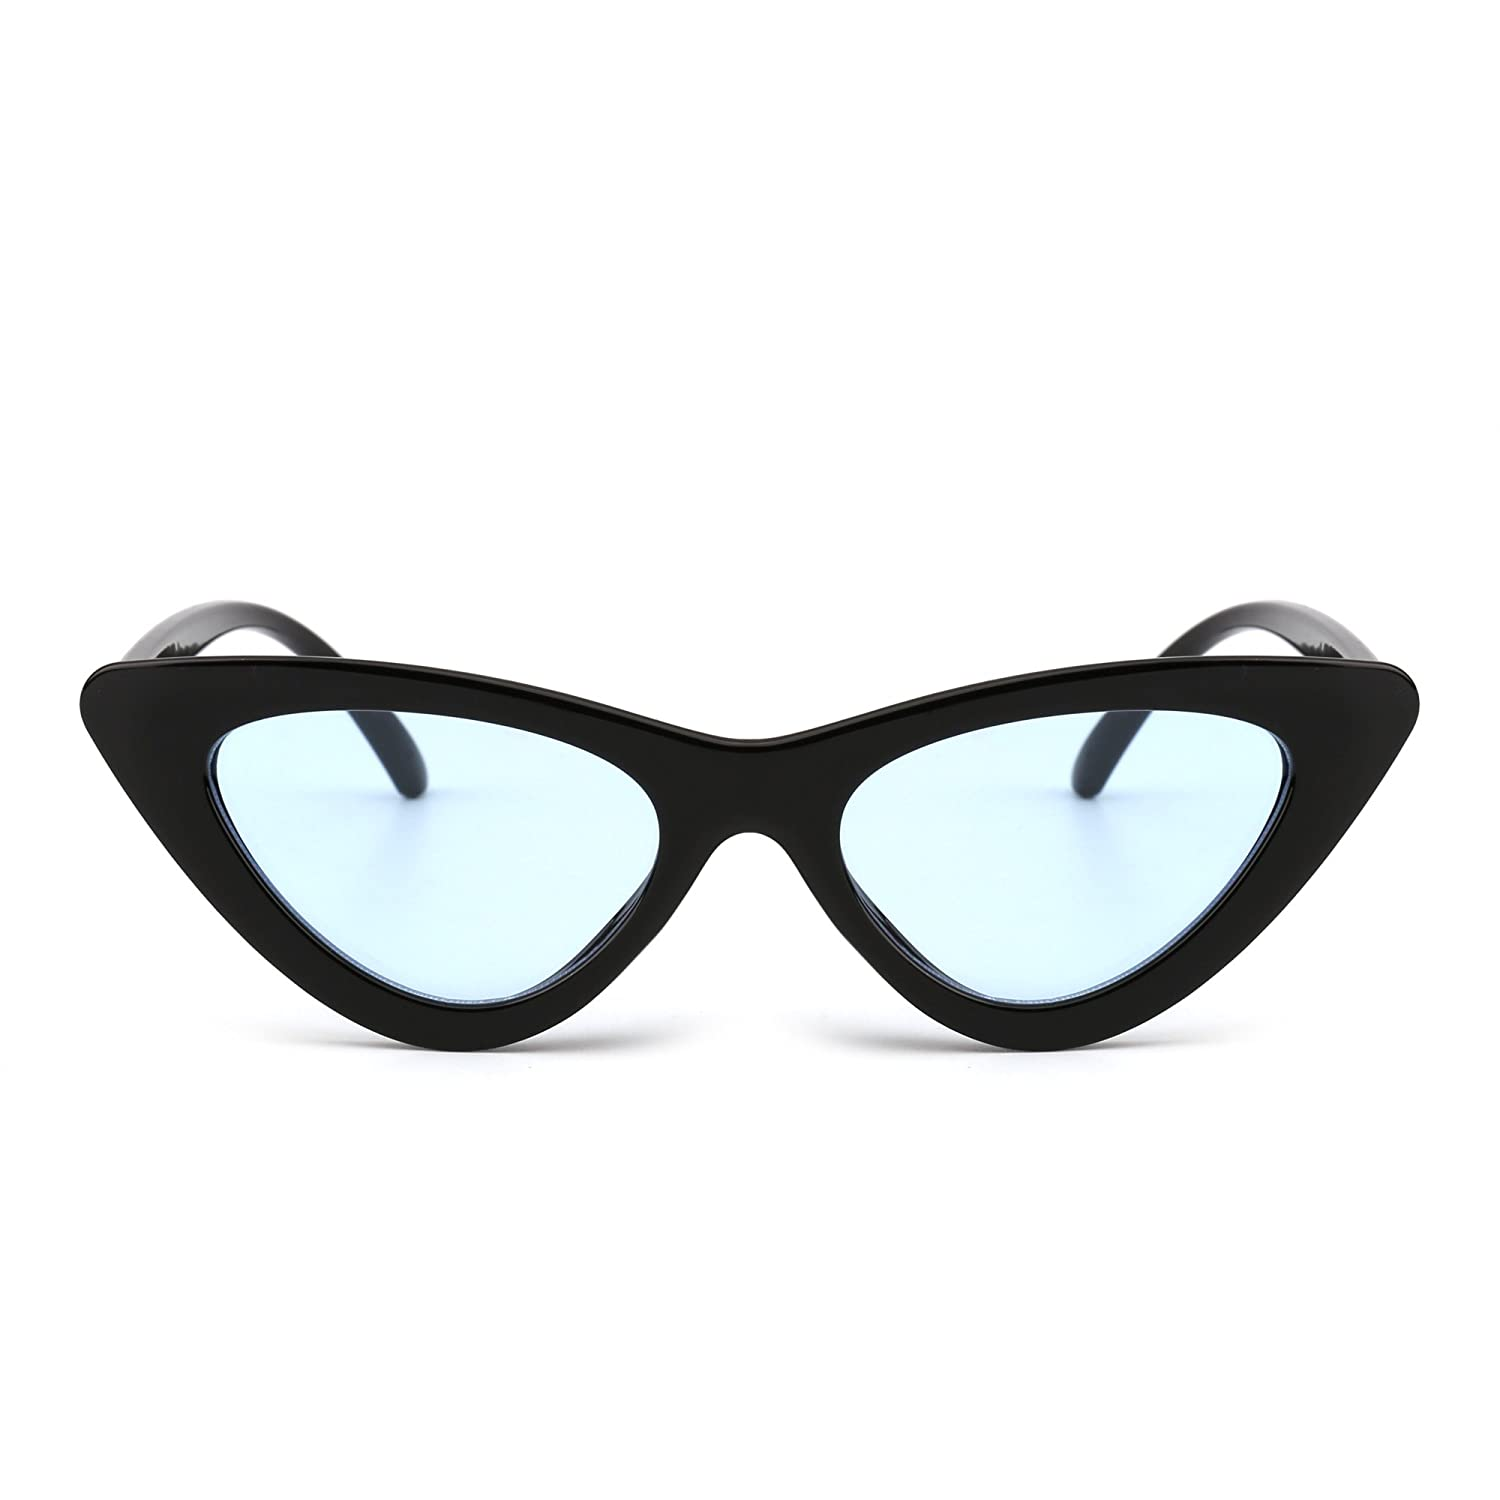 53d5090354d4 Retro Clout Goggles Cateye Sunglasses Cute Cat Eye Plastic Shades Tinted  Lens Eyeglasses Women (Black/Blue): Amazon.co.uk: Clothing